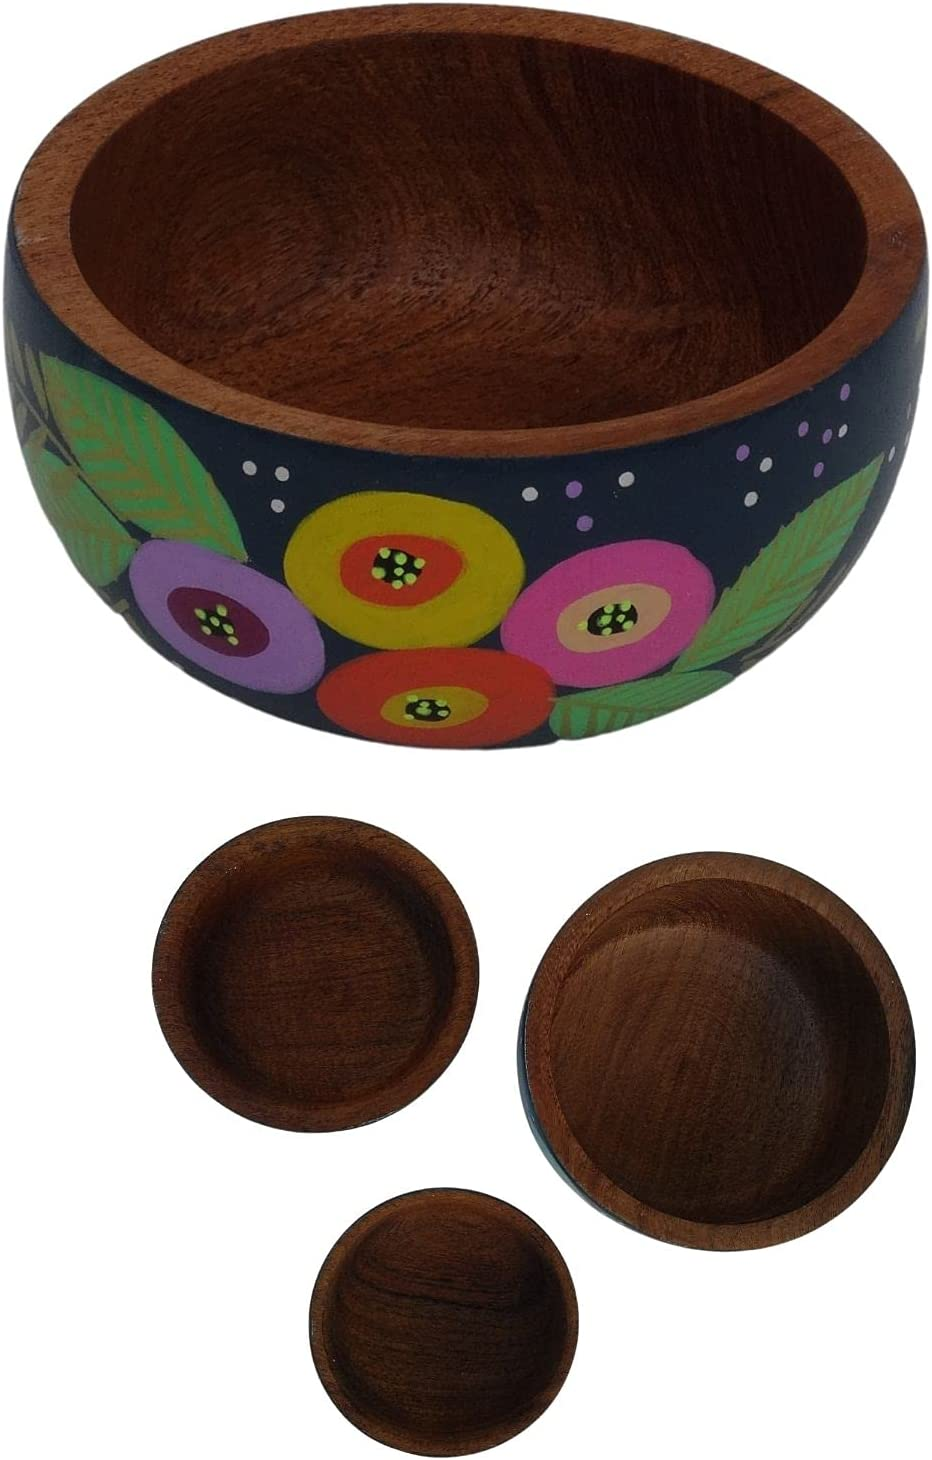 Thunder Solutions Handcrafted Wooden Decorative 3 Set Bowls- Genuine Free Shipping of Max 64% OFF